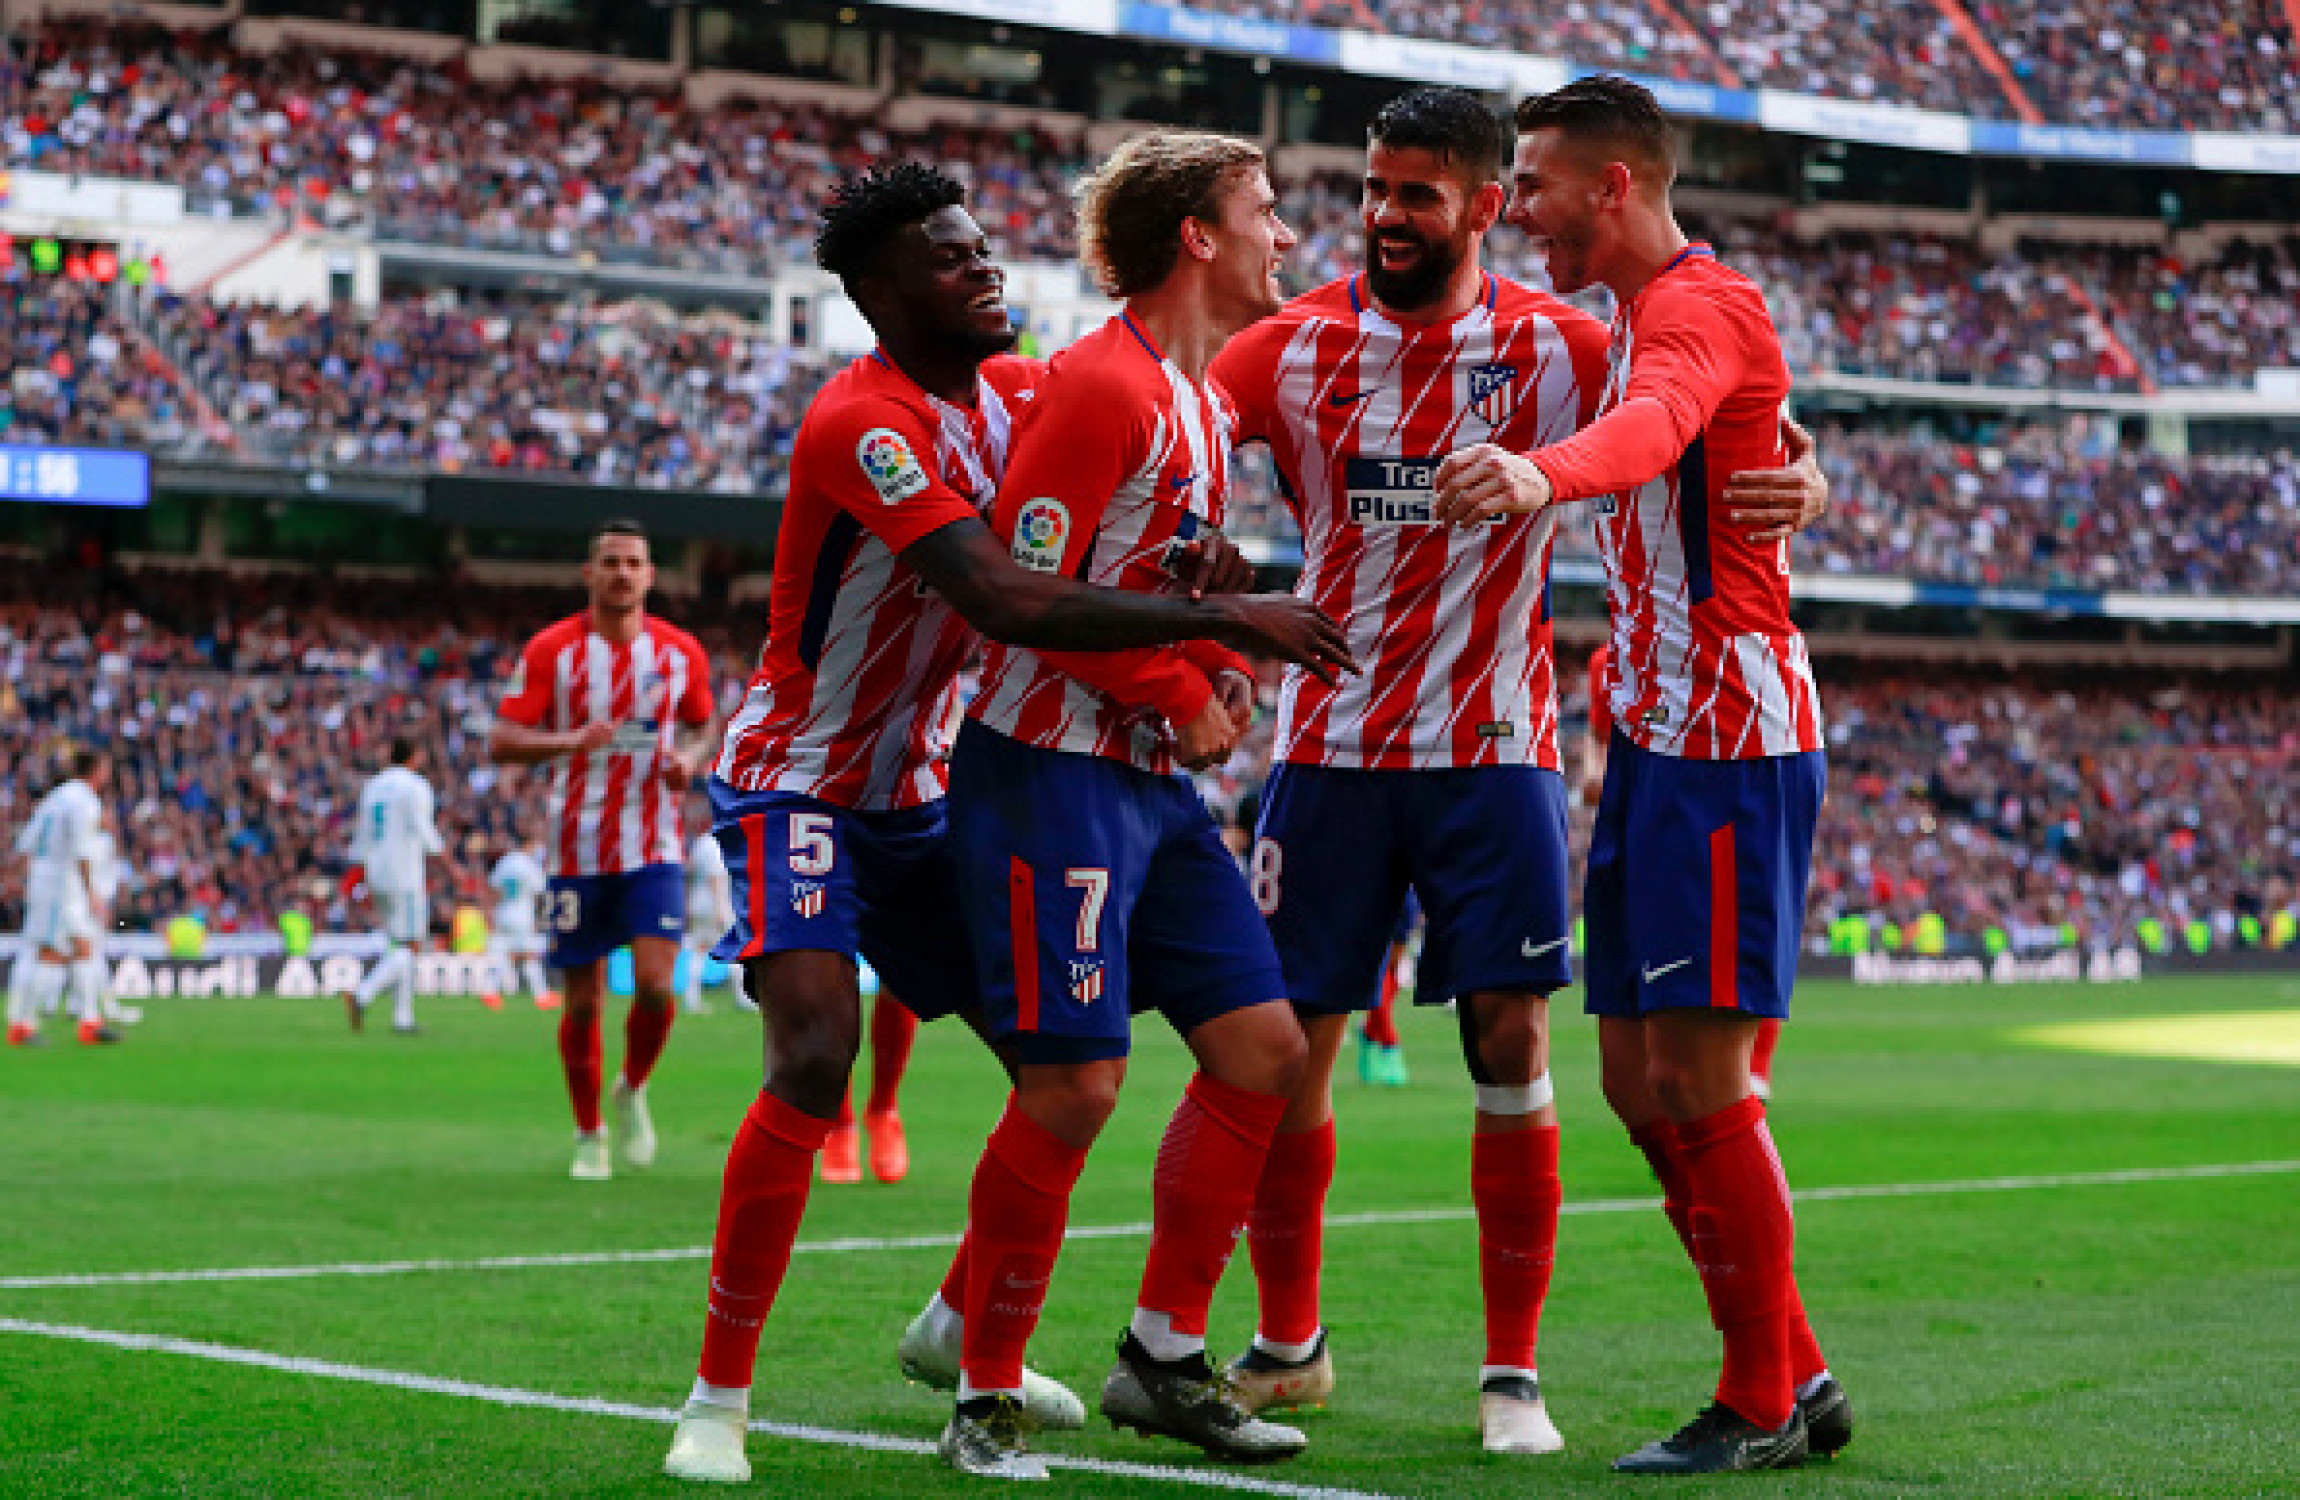 Real Madrid vs Atletico Madrid: Five things to look forward to